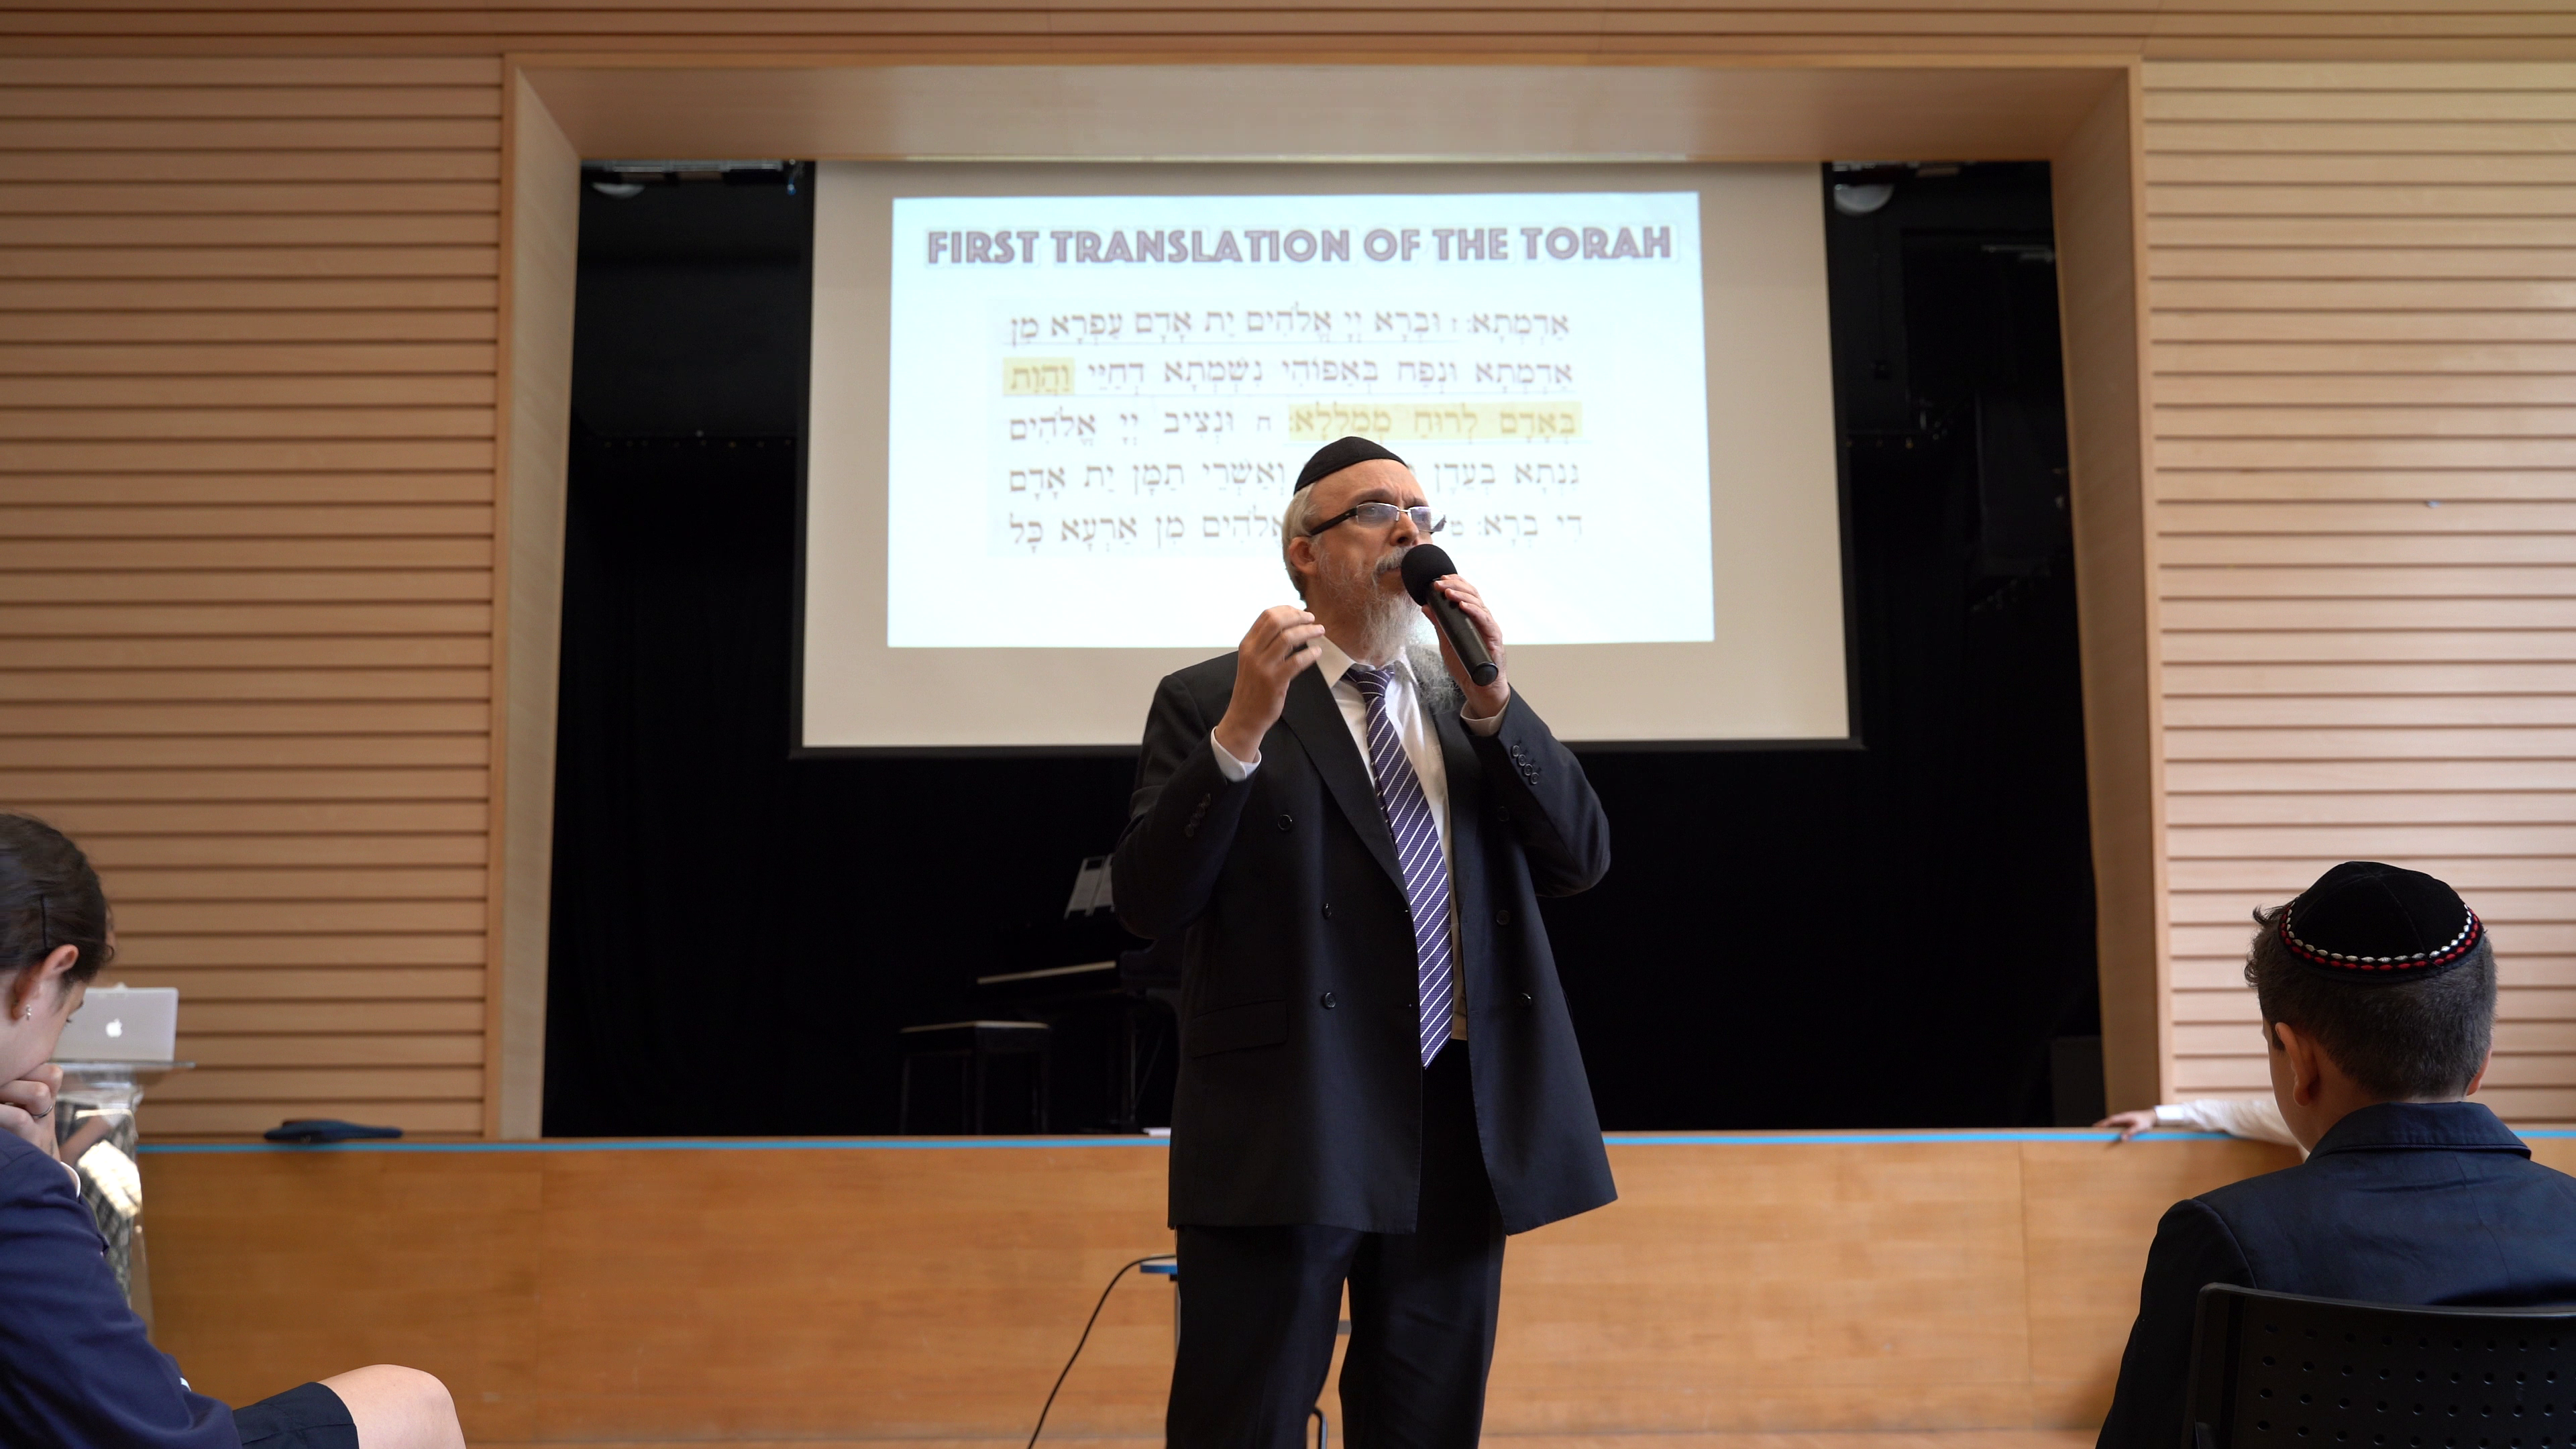 Rabbi Avtzon Visits Elsa High School in Lead up to Rosh Hashanah